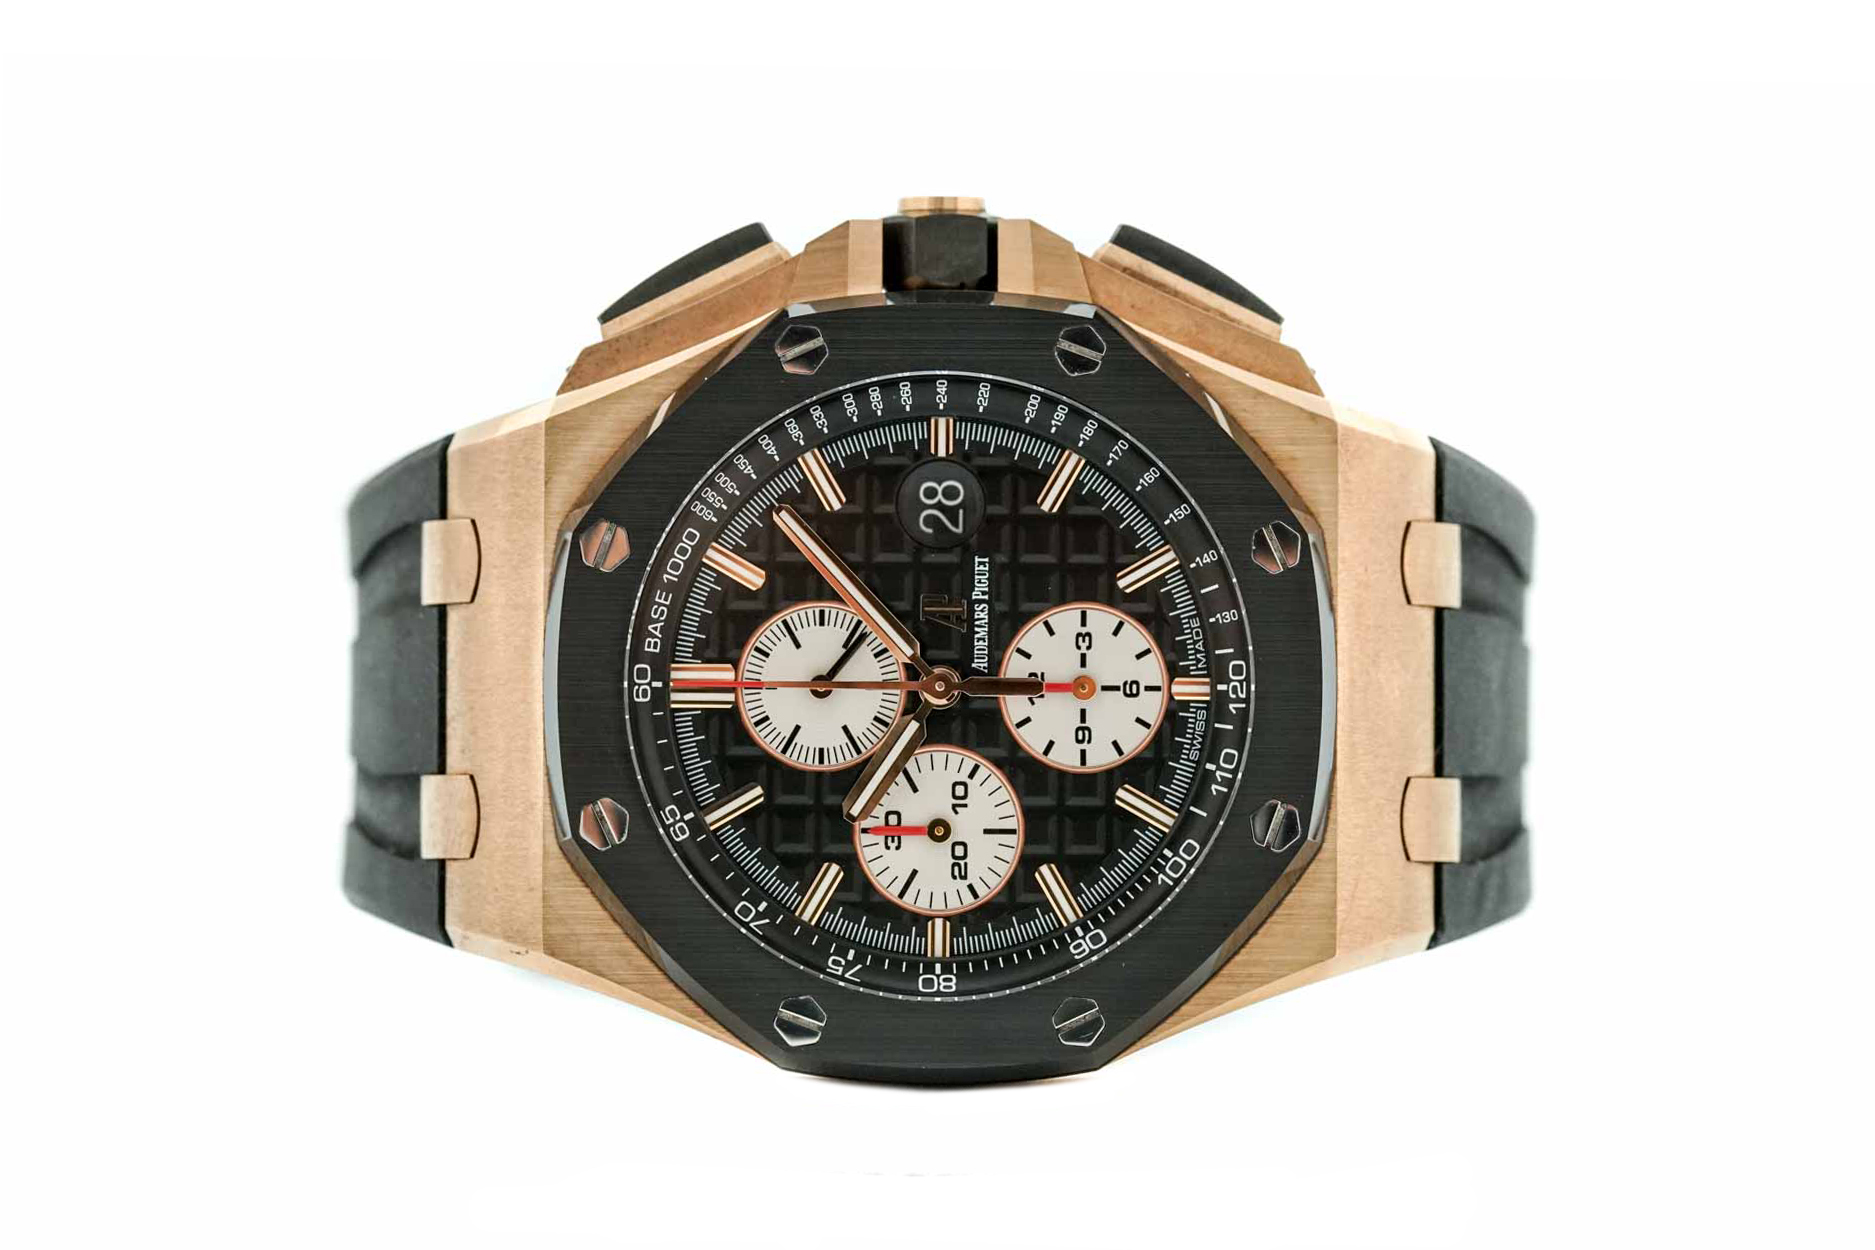 Đồng Hồ Audemars Piguet Royal Oak Offshore Chronograph 44mm